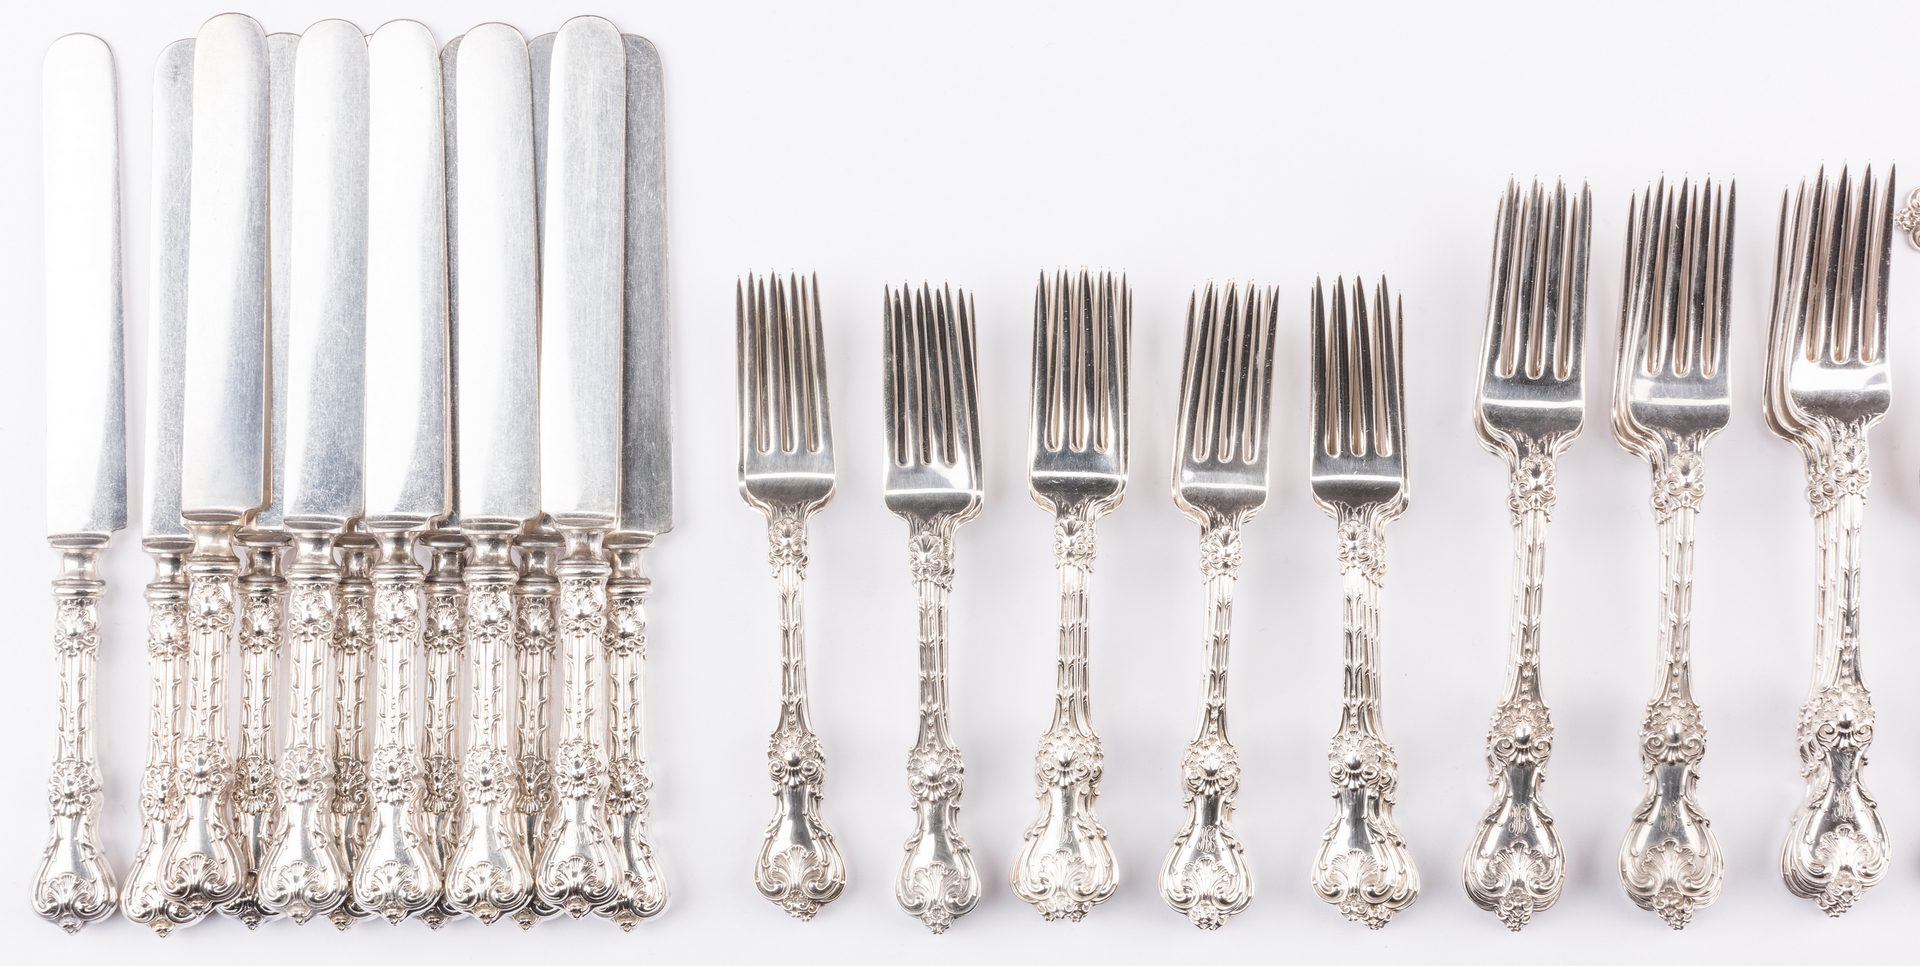 Lot 67: Whiting King Edward Flatware, Black, Starr & Frost retailer